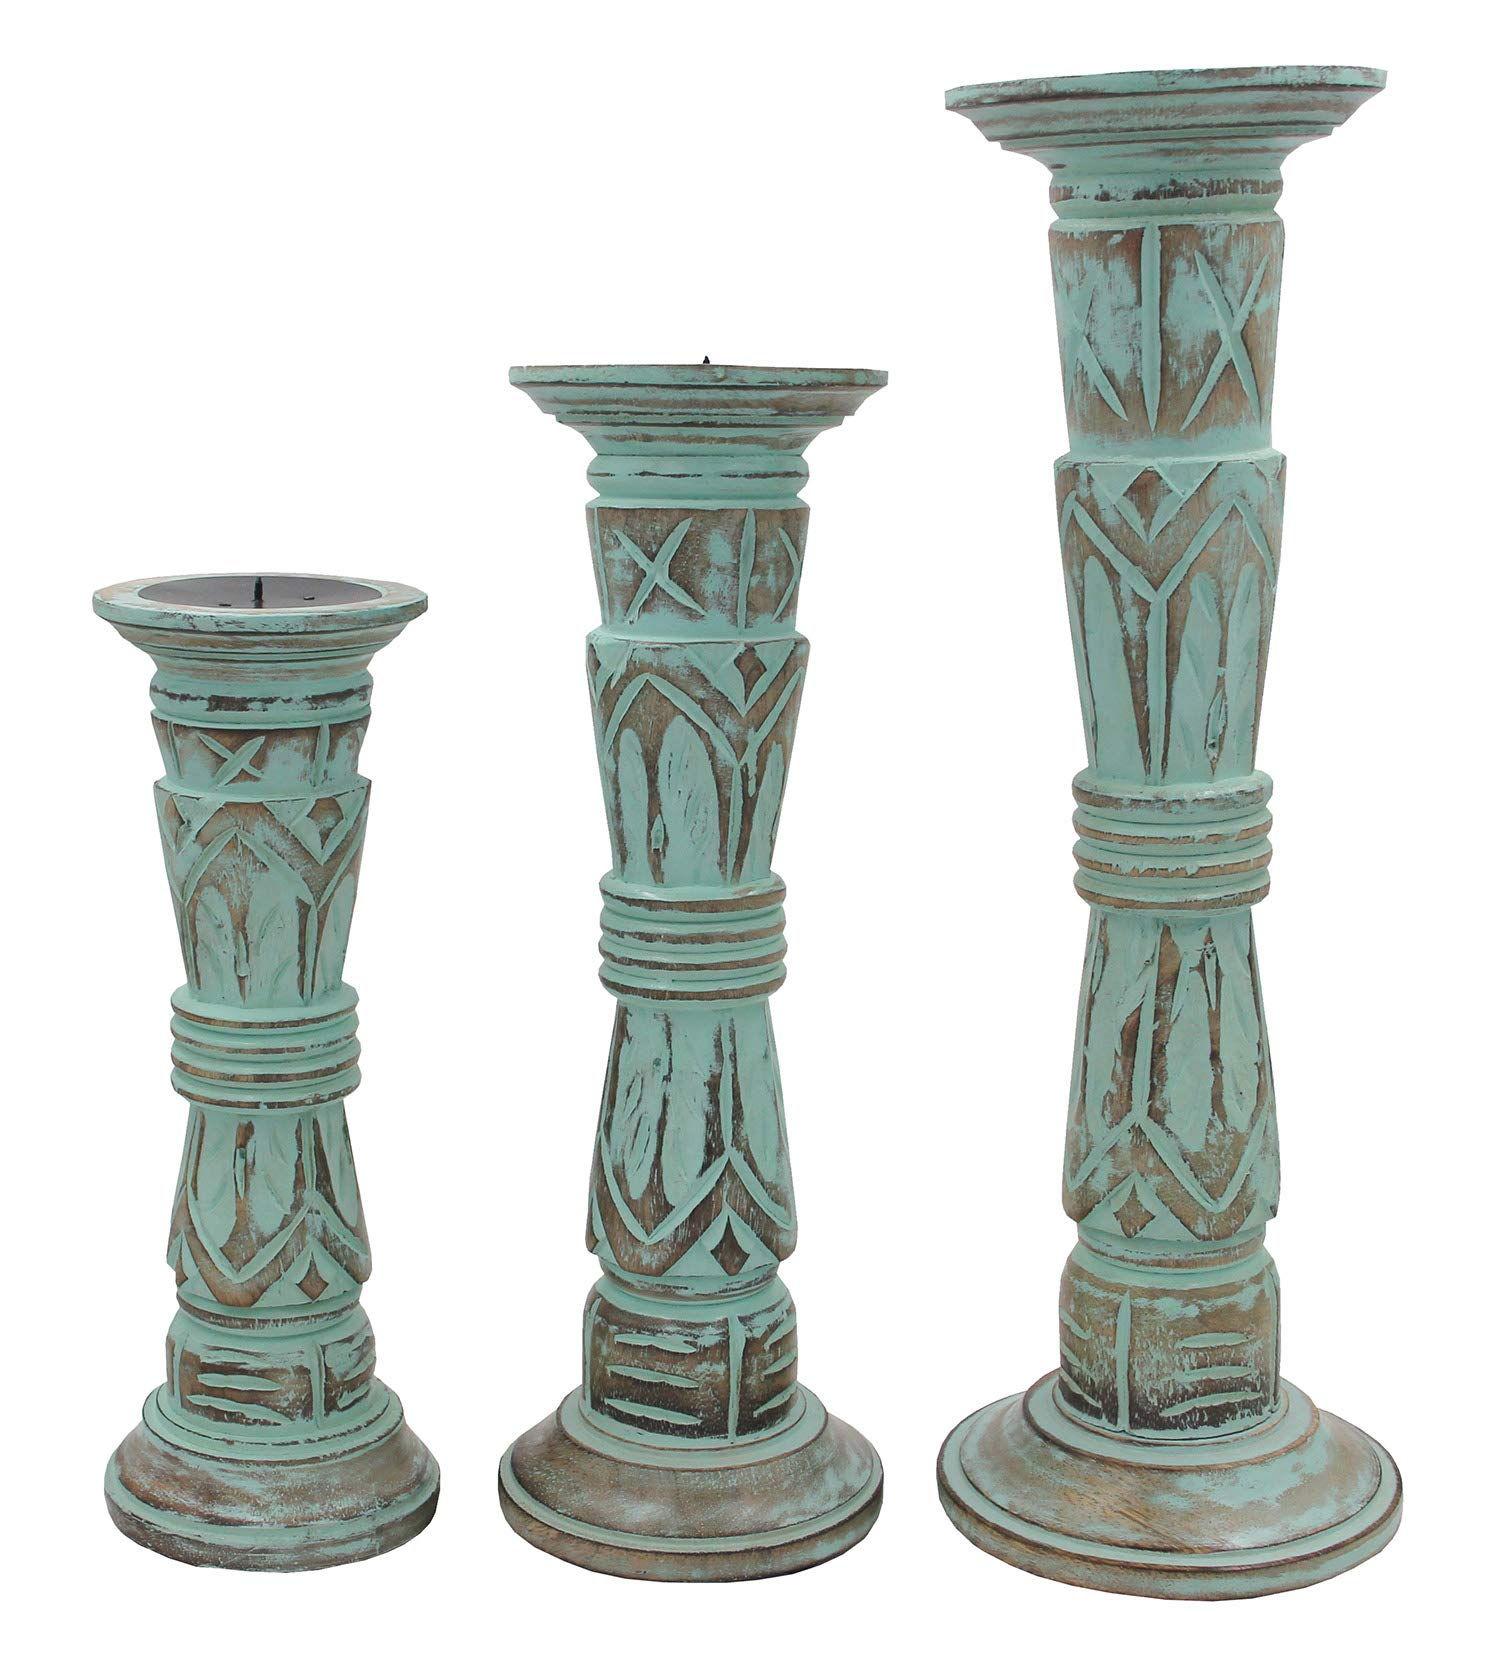 DharmaObjects Set of 3 Wooden Candle Holders - Height 17'', 14'', 12'' (Green)